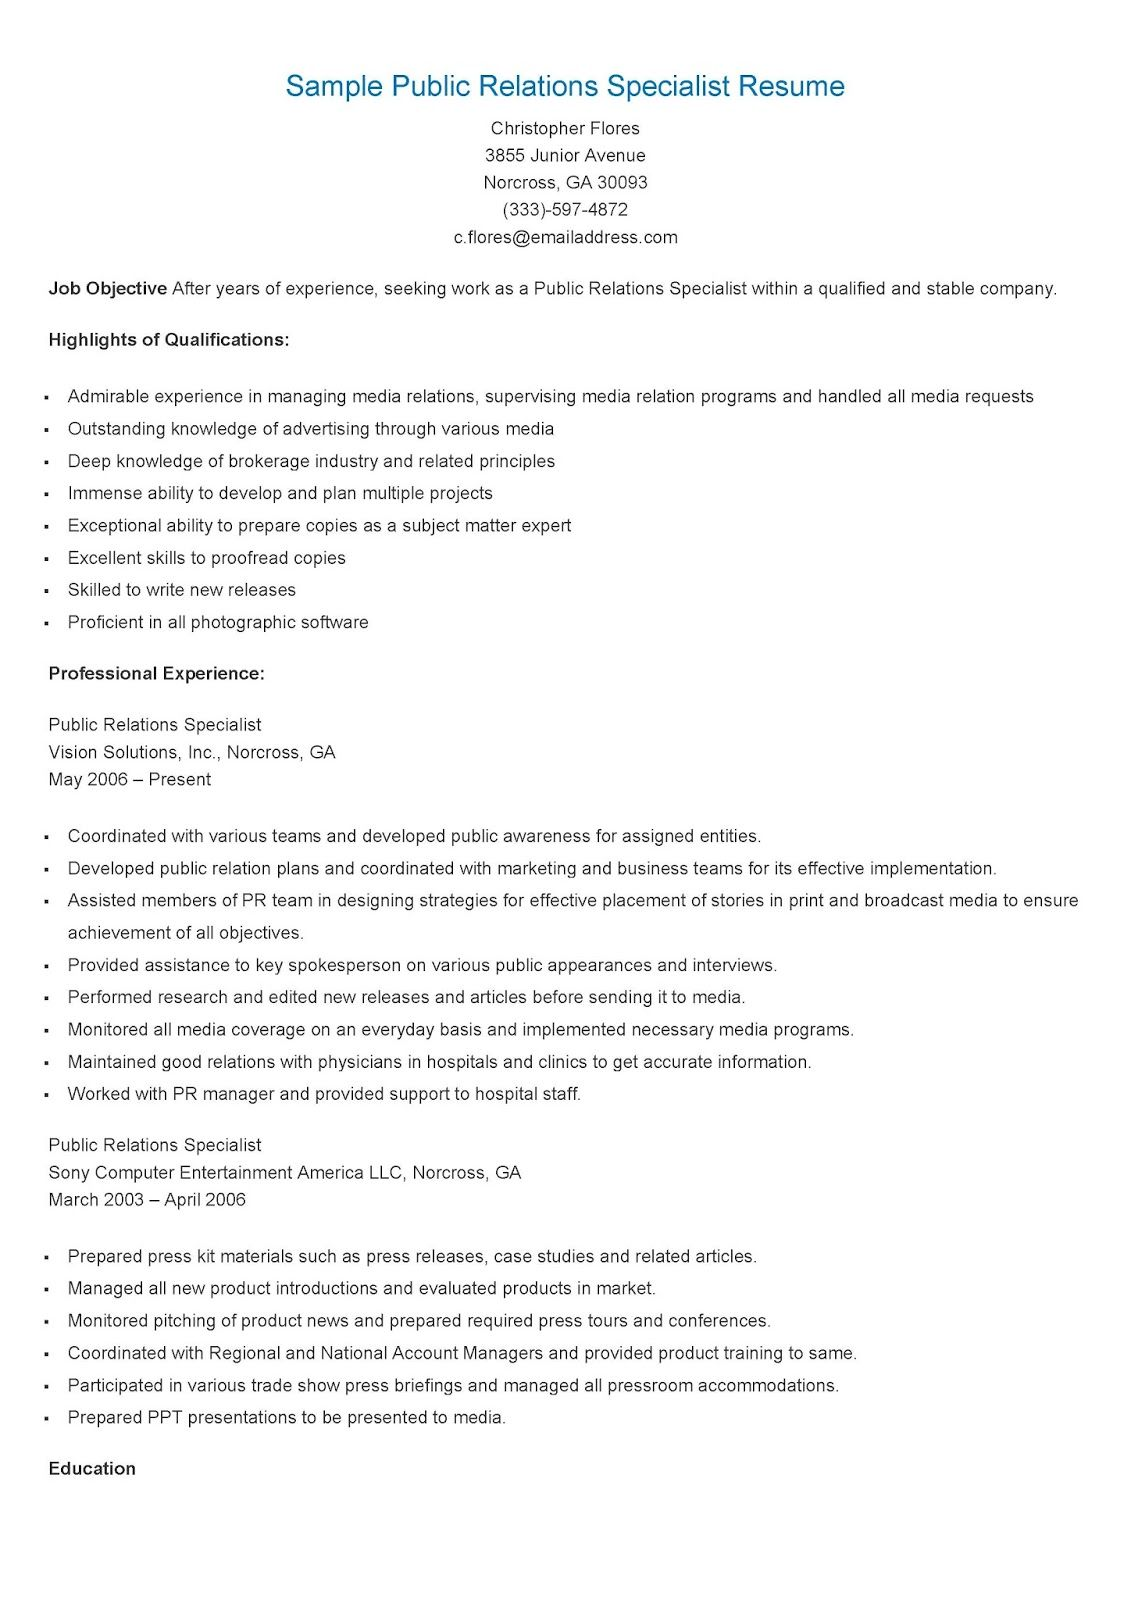 Sample Public Relations Specialist Resume  Resame